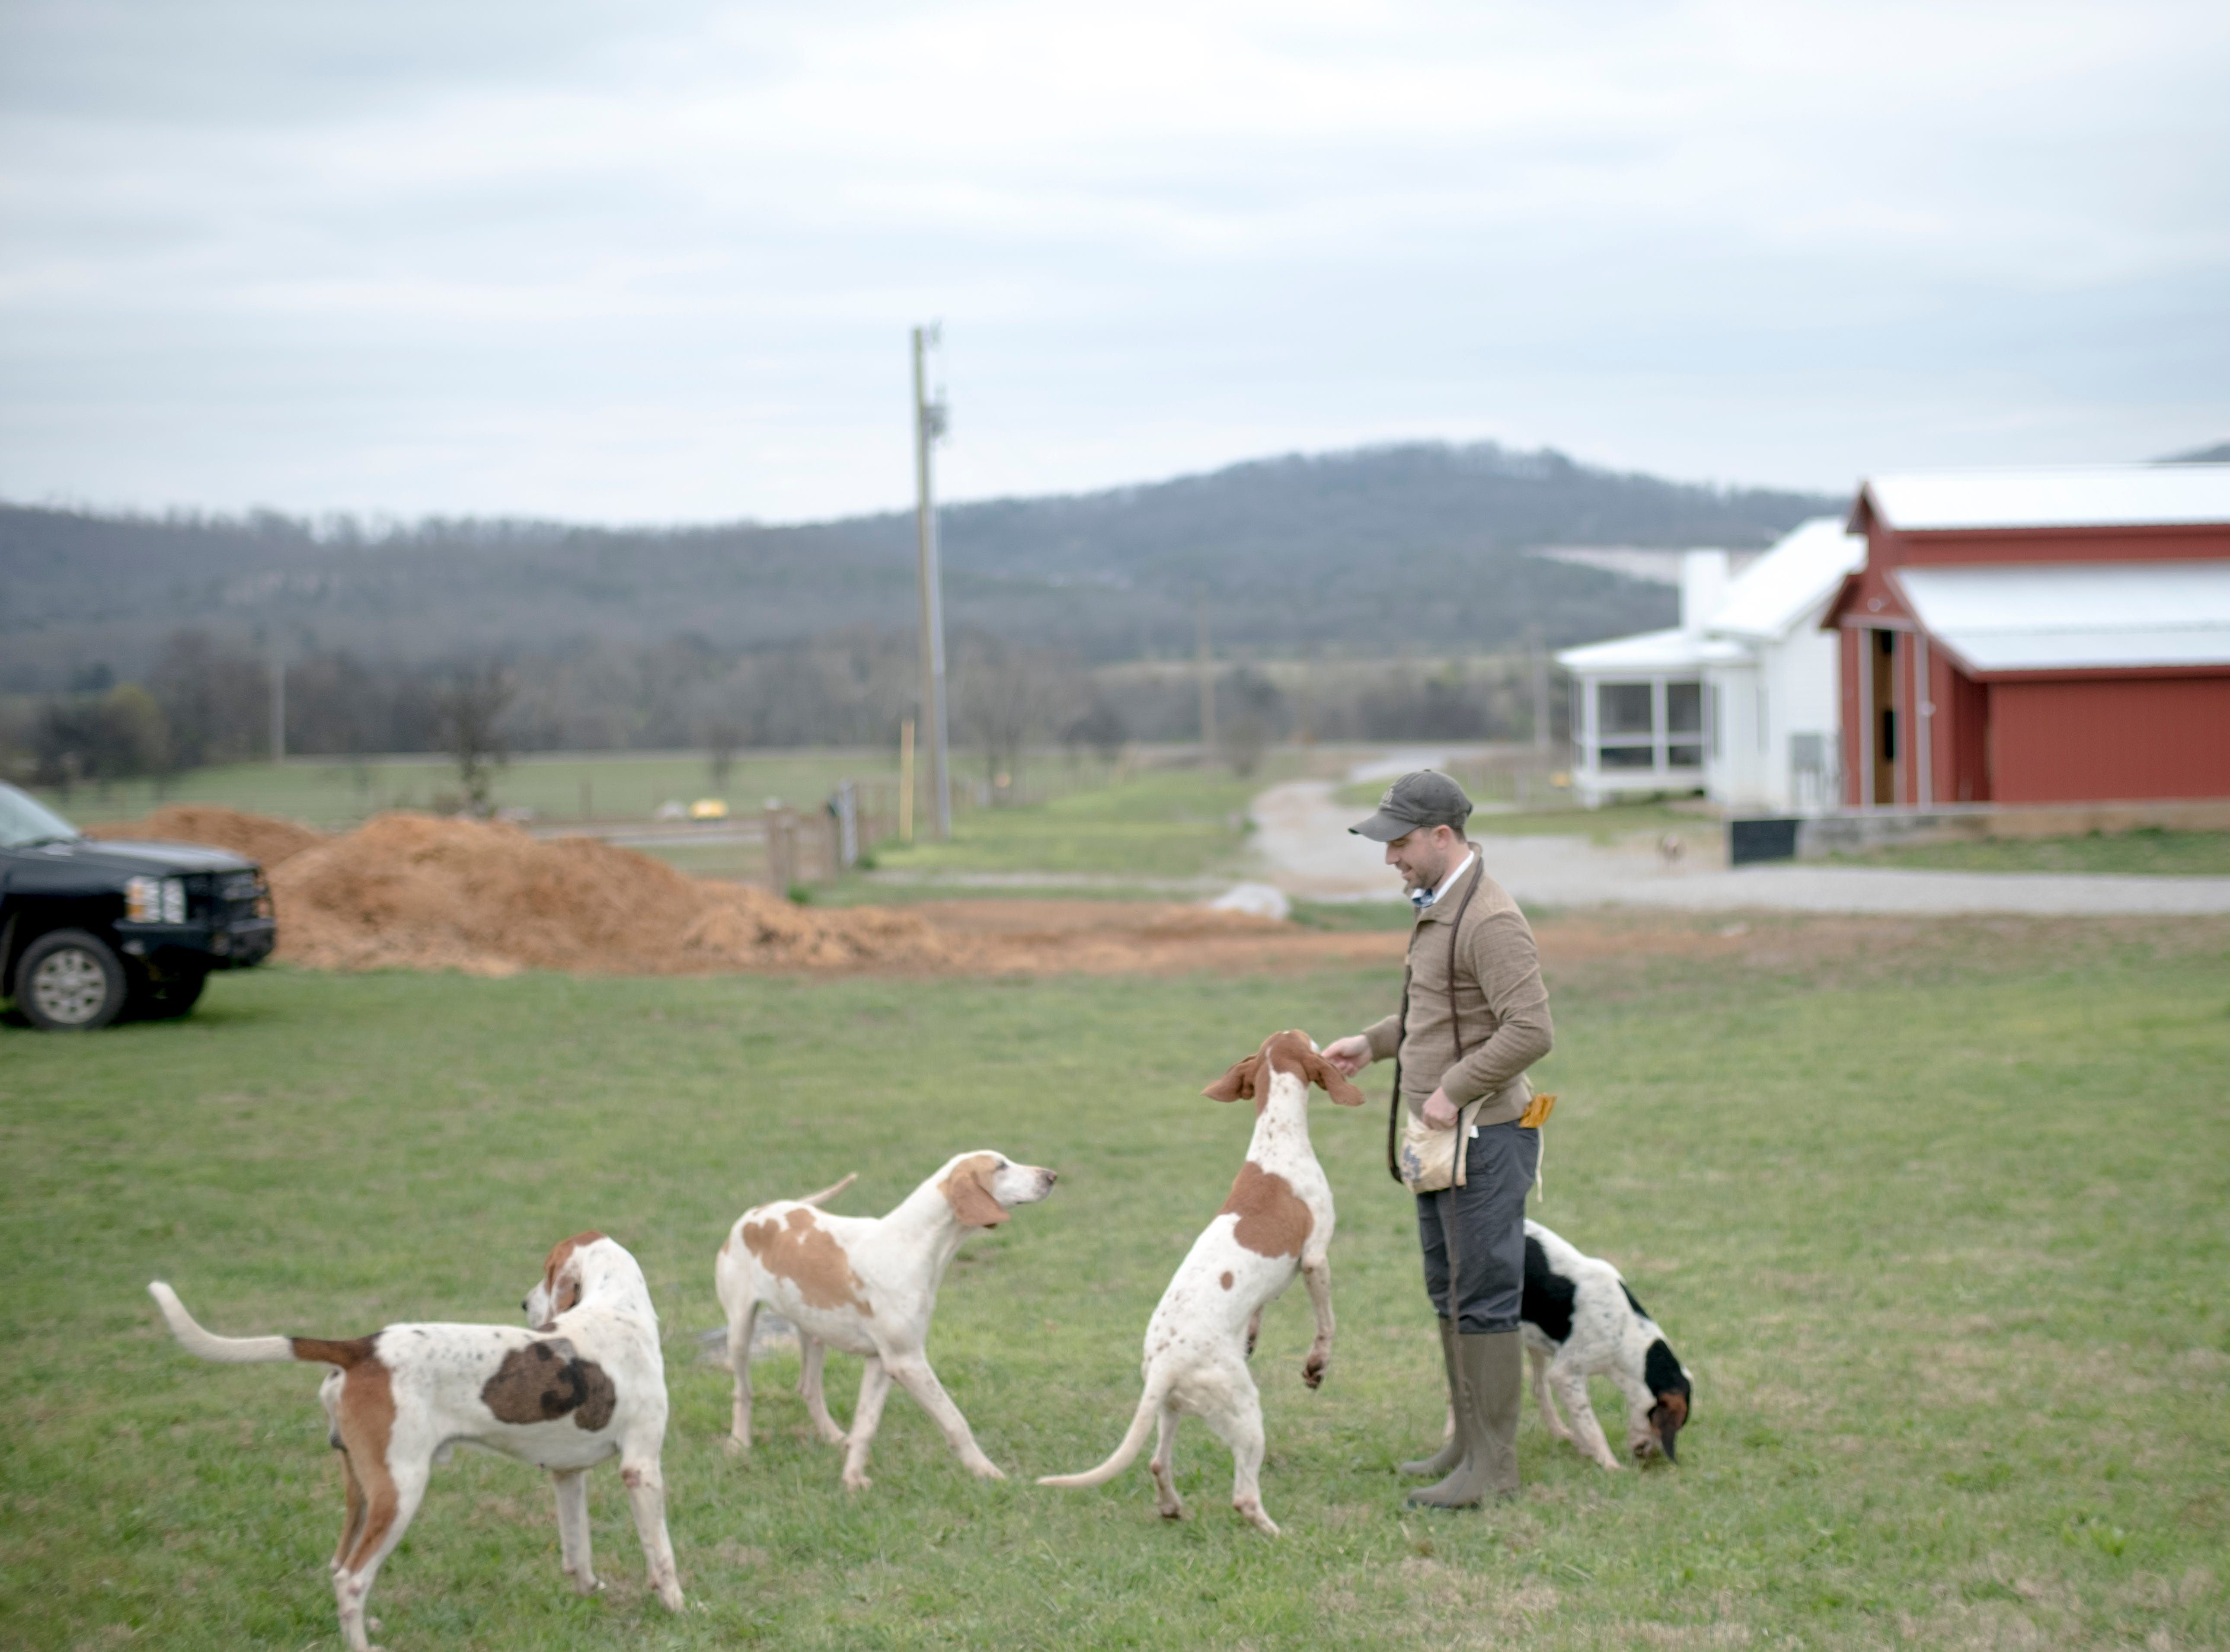 TVH Master Huntsman Ryan Johnsey plays in a field with his Penn-Marydel foxhounds at the club's kennel in New Market, Tennessee on Tuesday, March 26, 2019. The hounds are a breed of American Foxhound that was bred in the states of Pennsylvania, Maryland, and Deleware favored for their excellent noses and loud bellow.